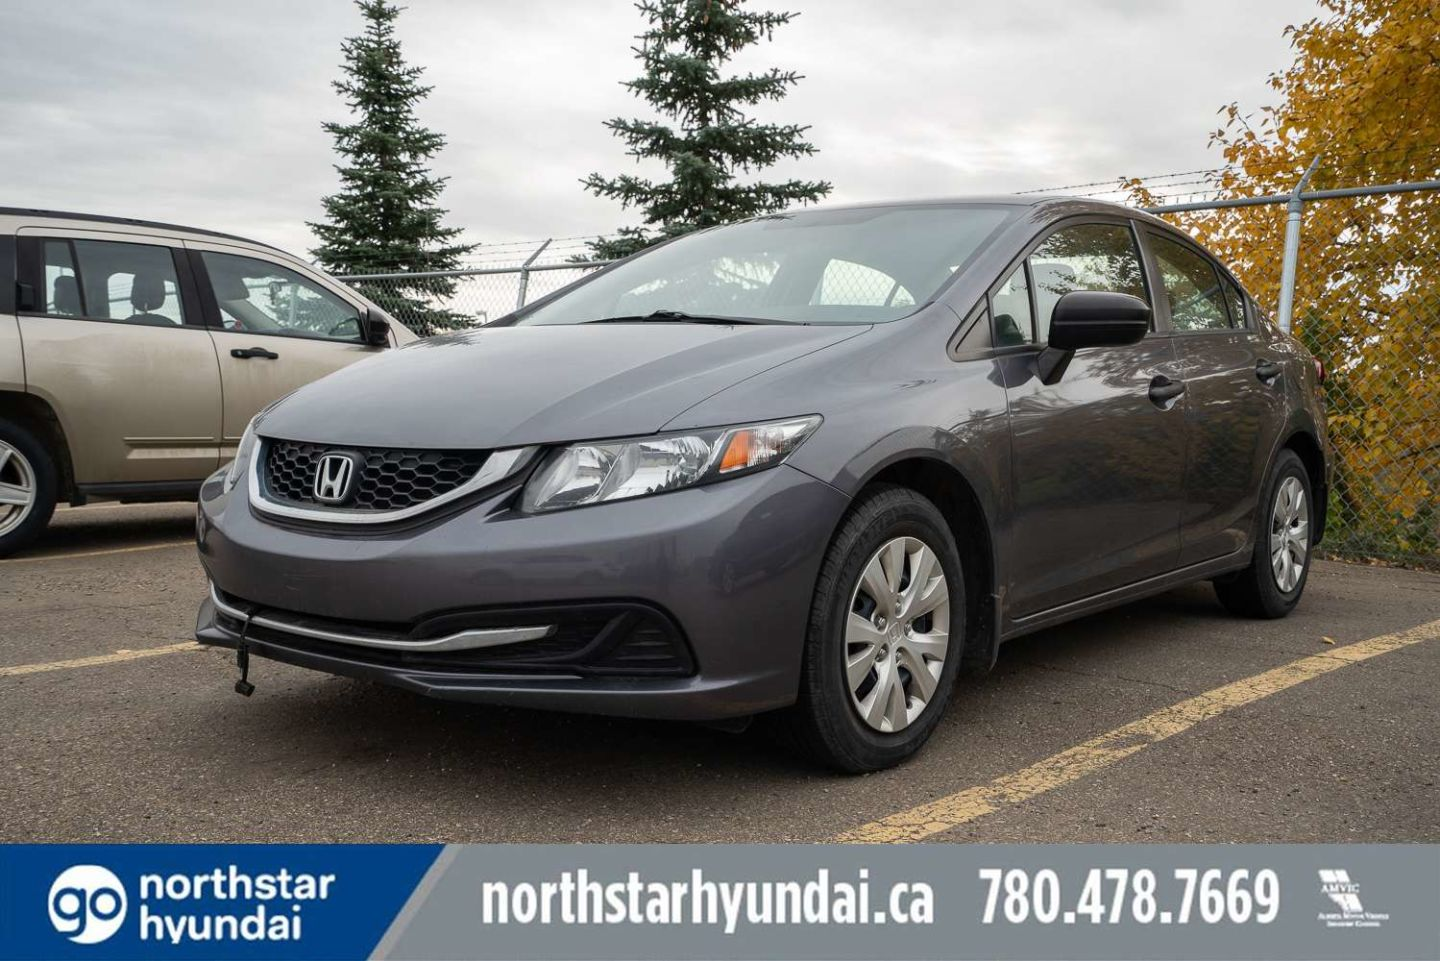 2014 Honda Civic Sedan DX for sale in Edmonton, Alberta